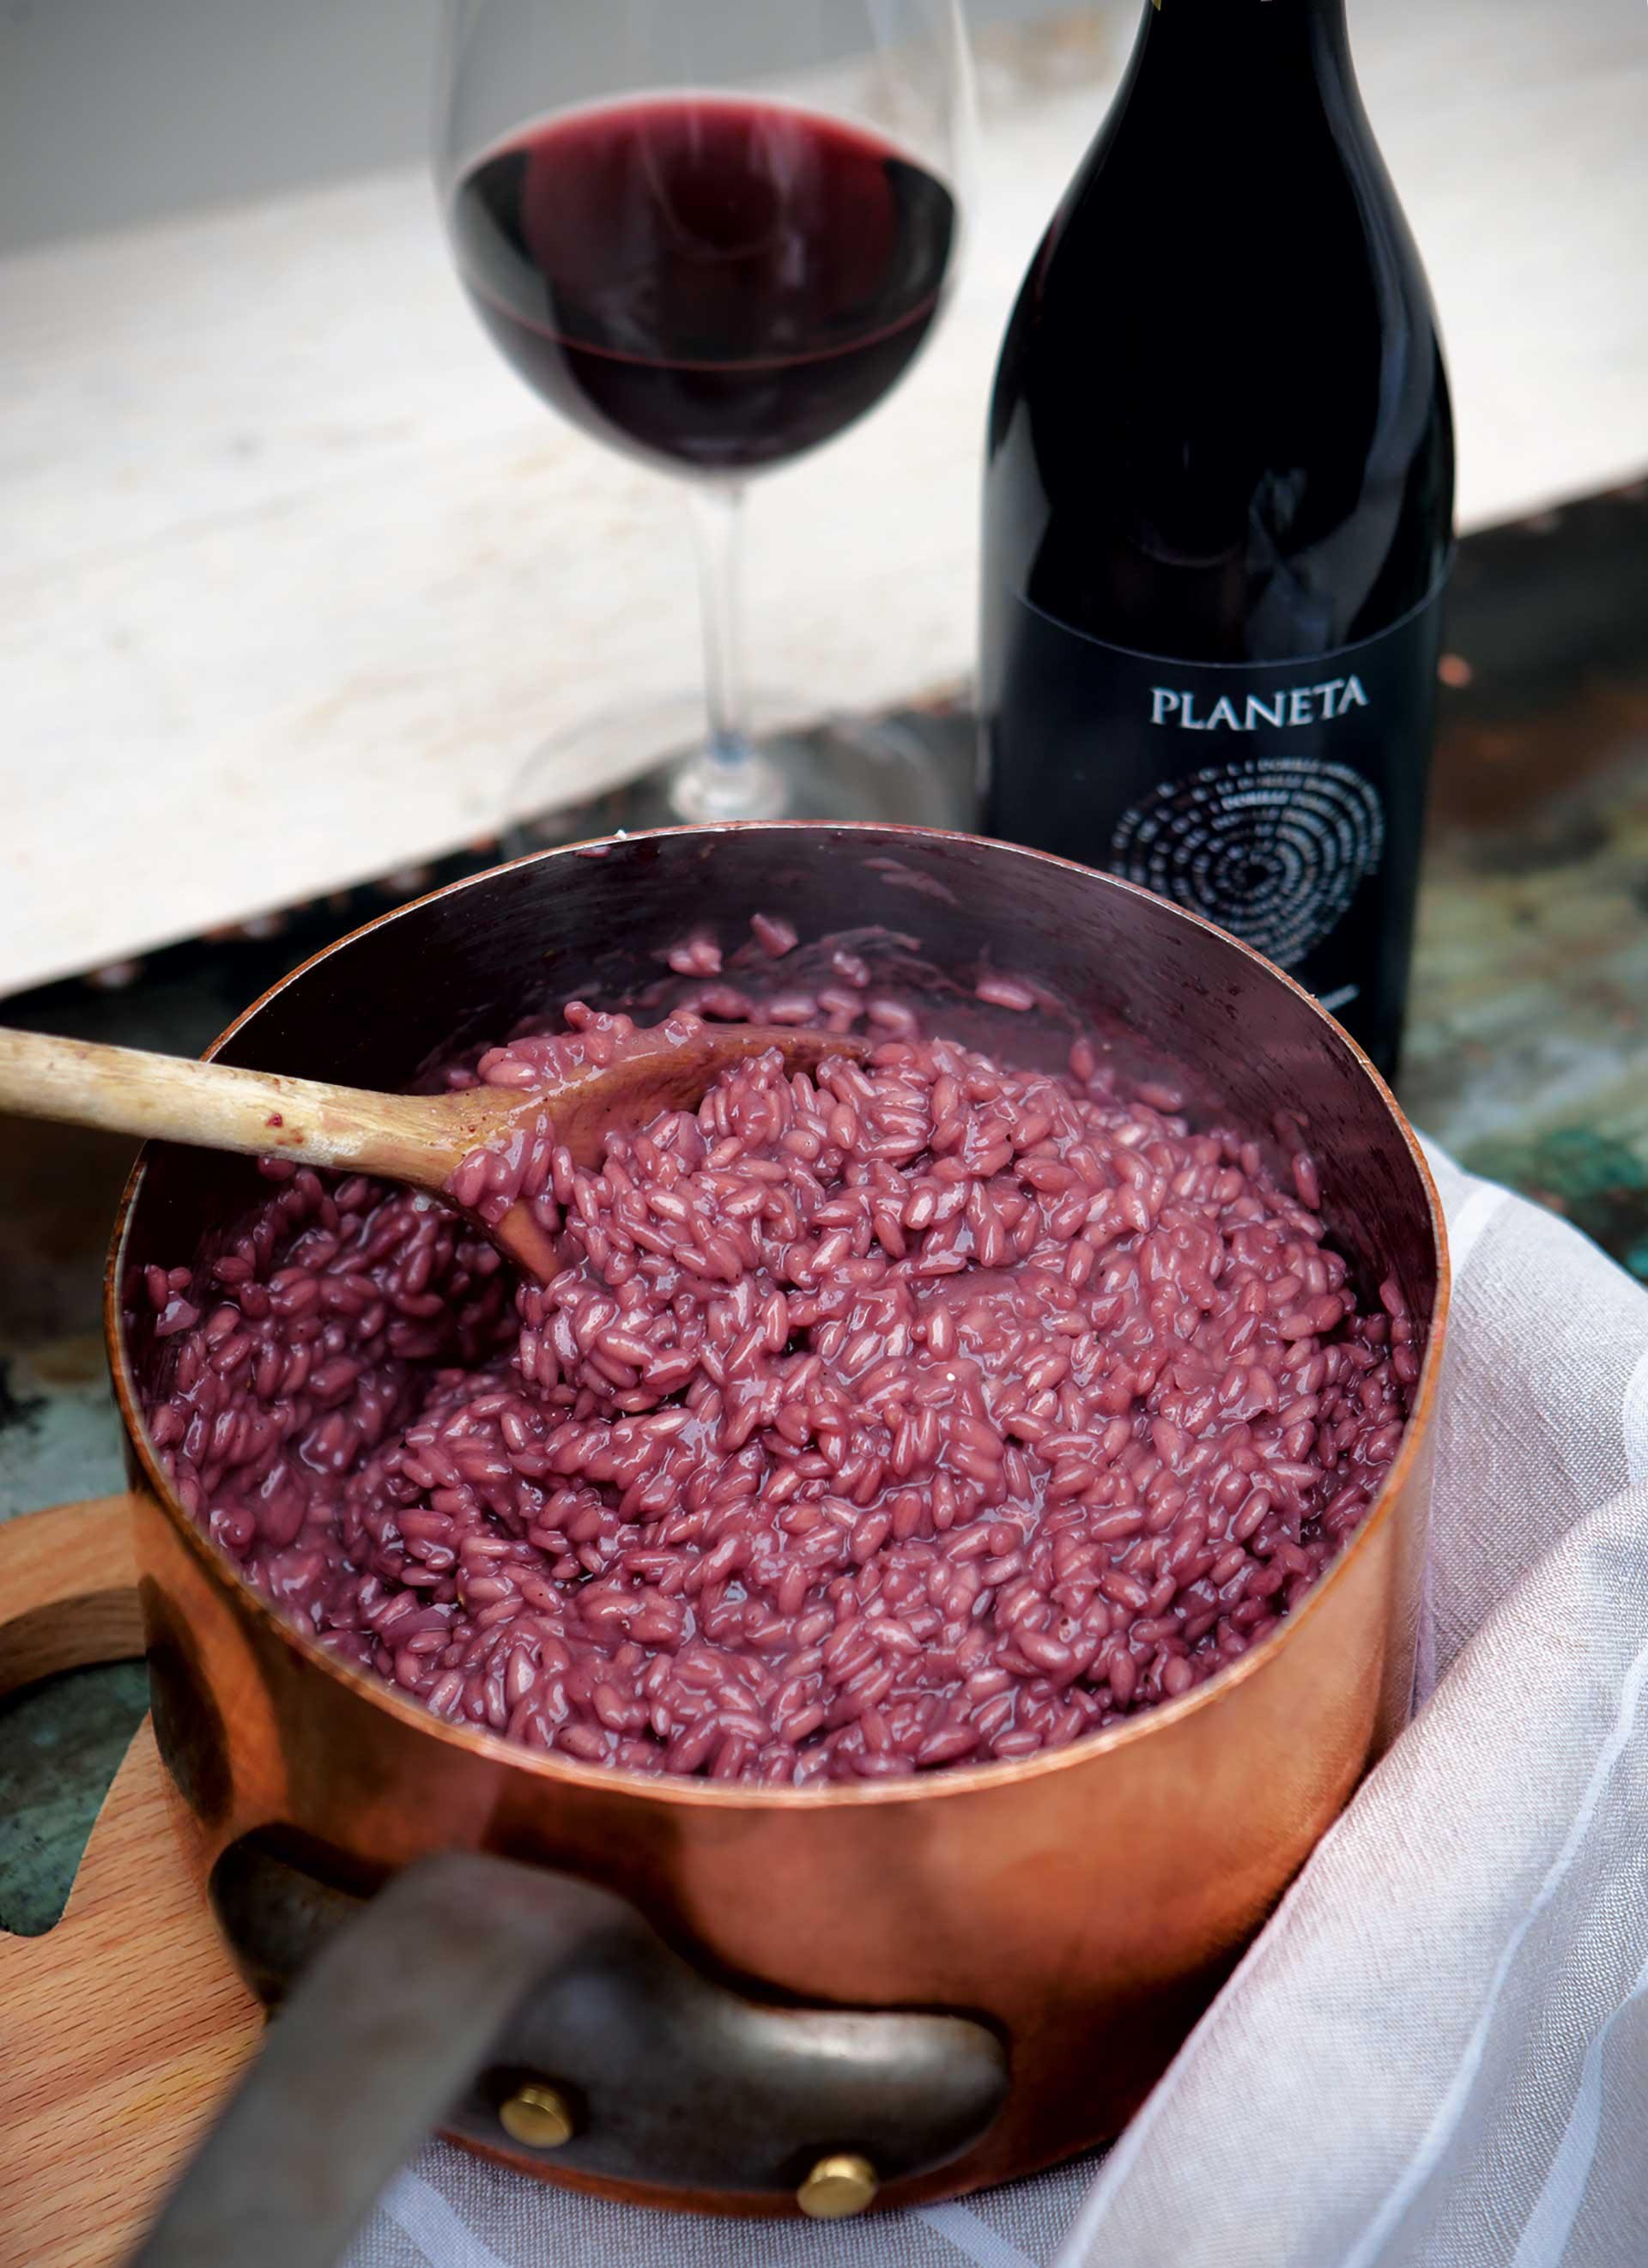 Risotto with cerasuolo wine